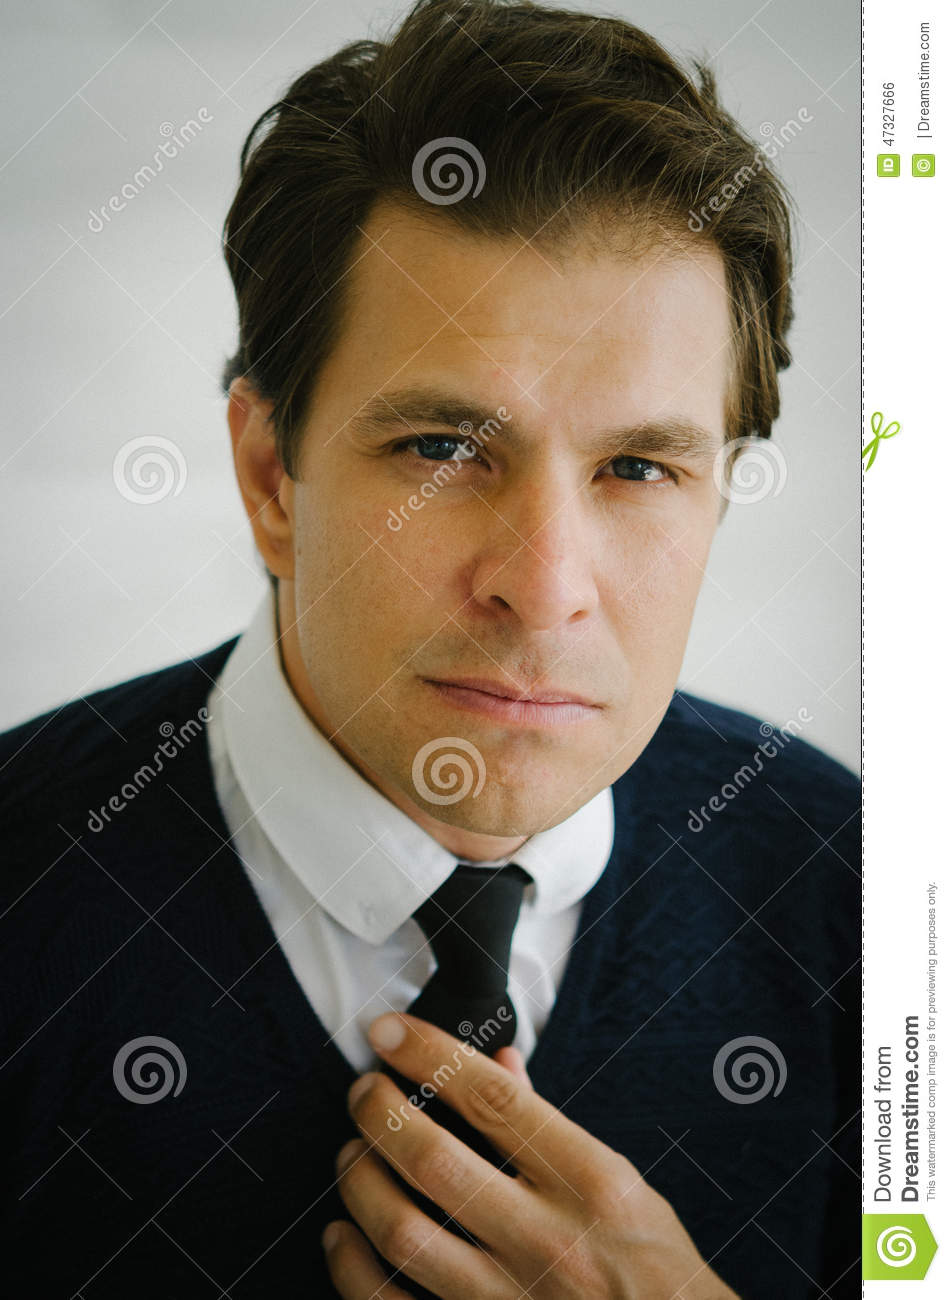 Real Men Stock Photo Image Of Thinking Blue Brownhair 47327666